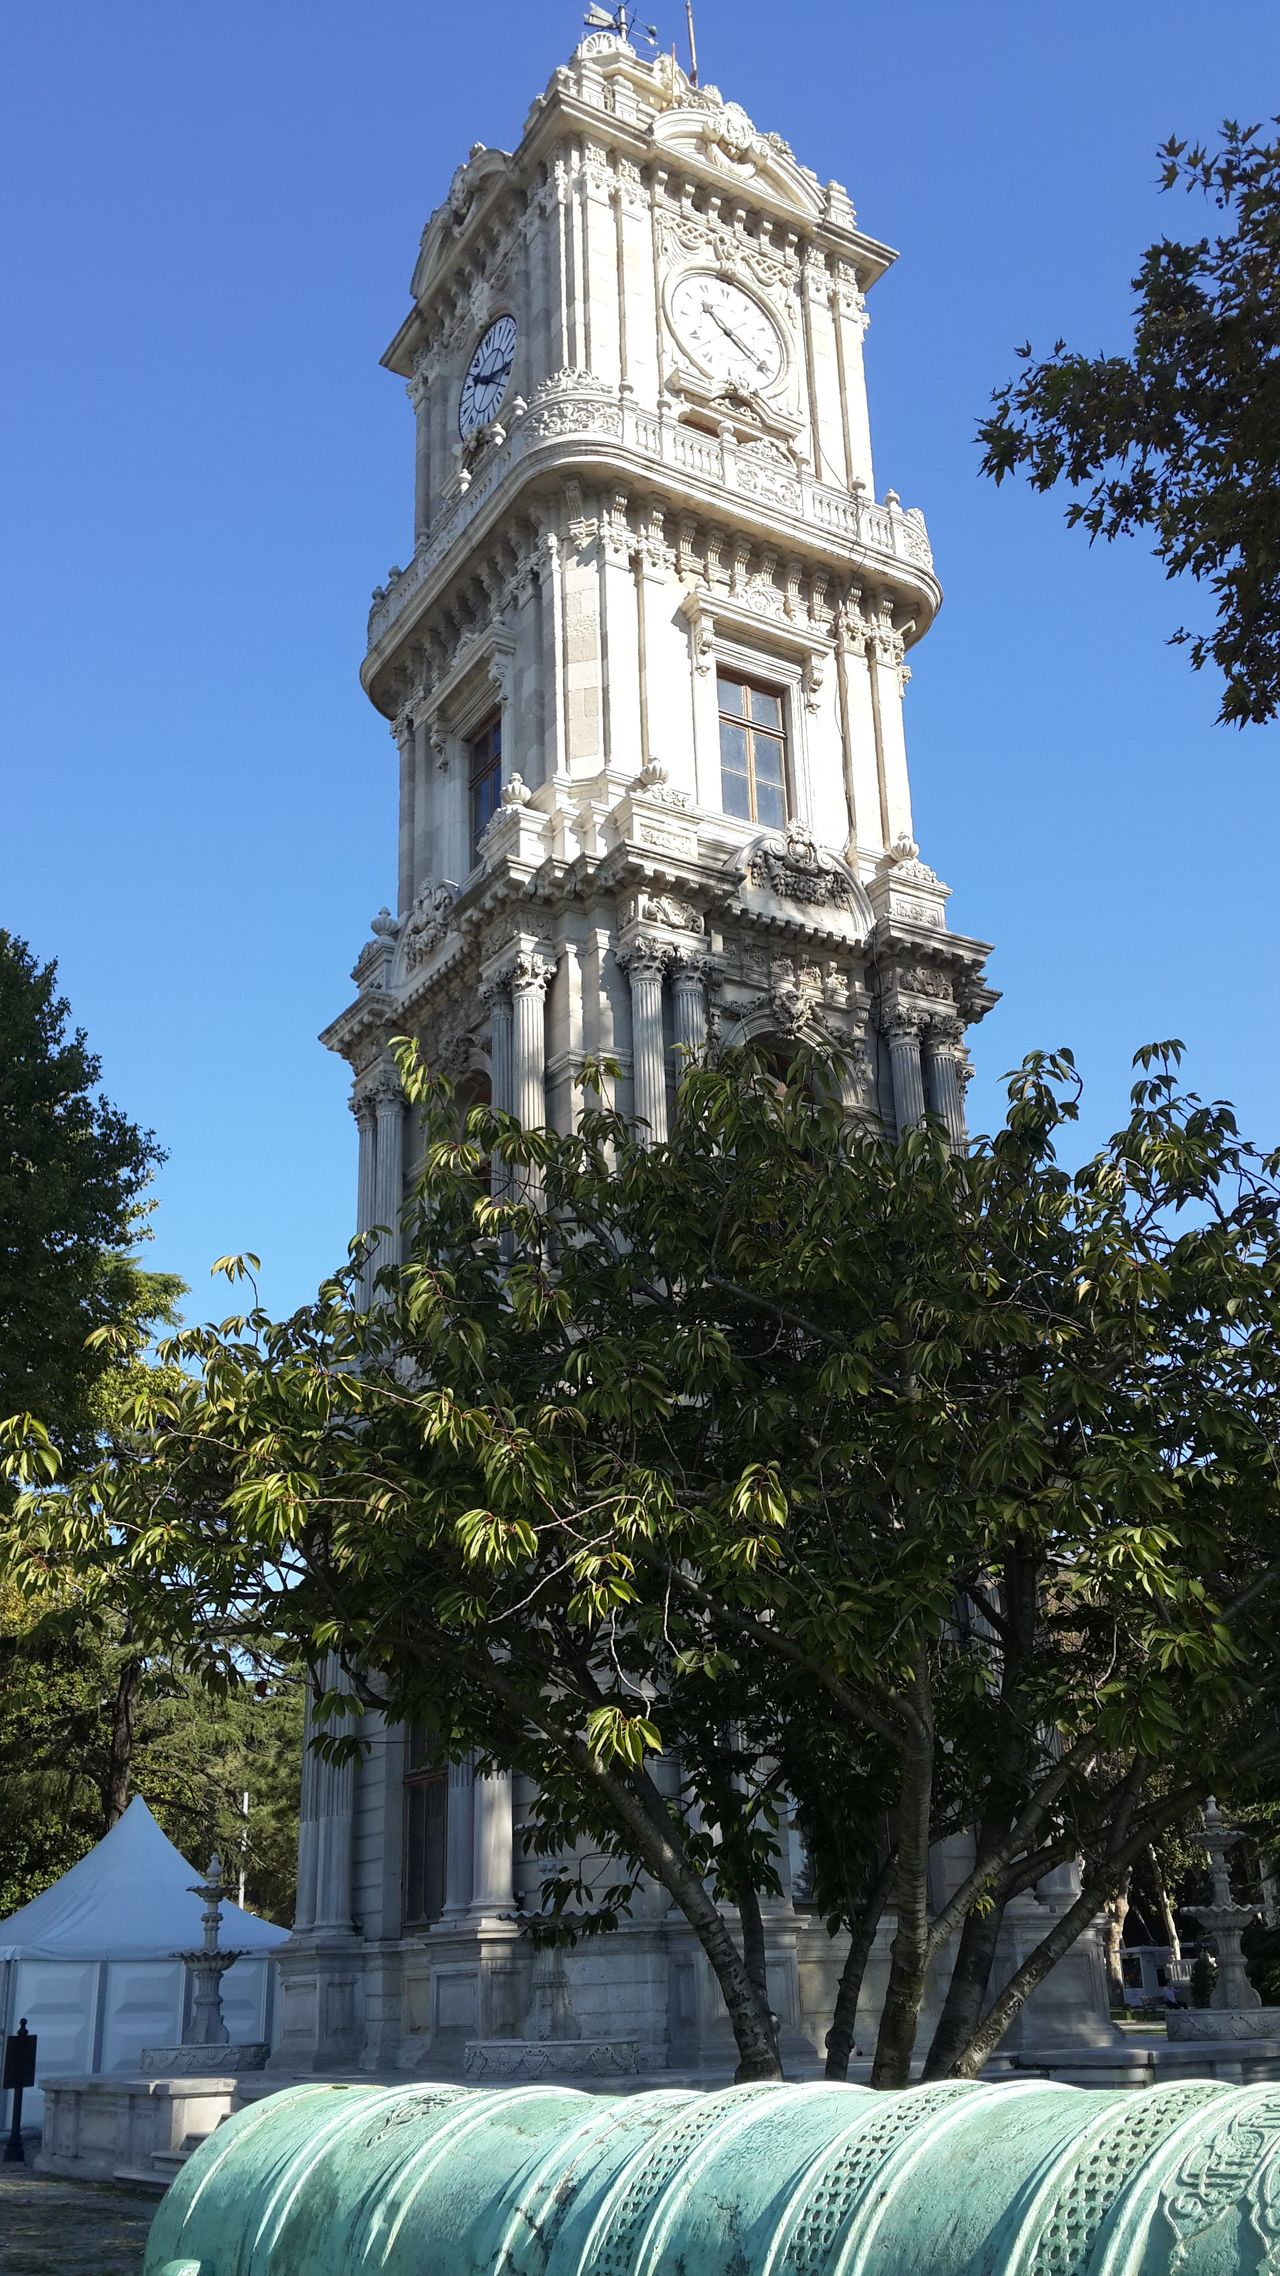 19th Century Buildings Architecture Cannons Clock Tower Day Dolmabahce Palace Dolmabahçe Sarayı History Istanbul No People Outdoors Palace Tree Turkey Weapons Of War